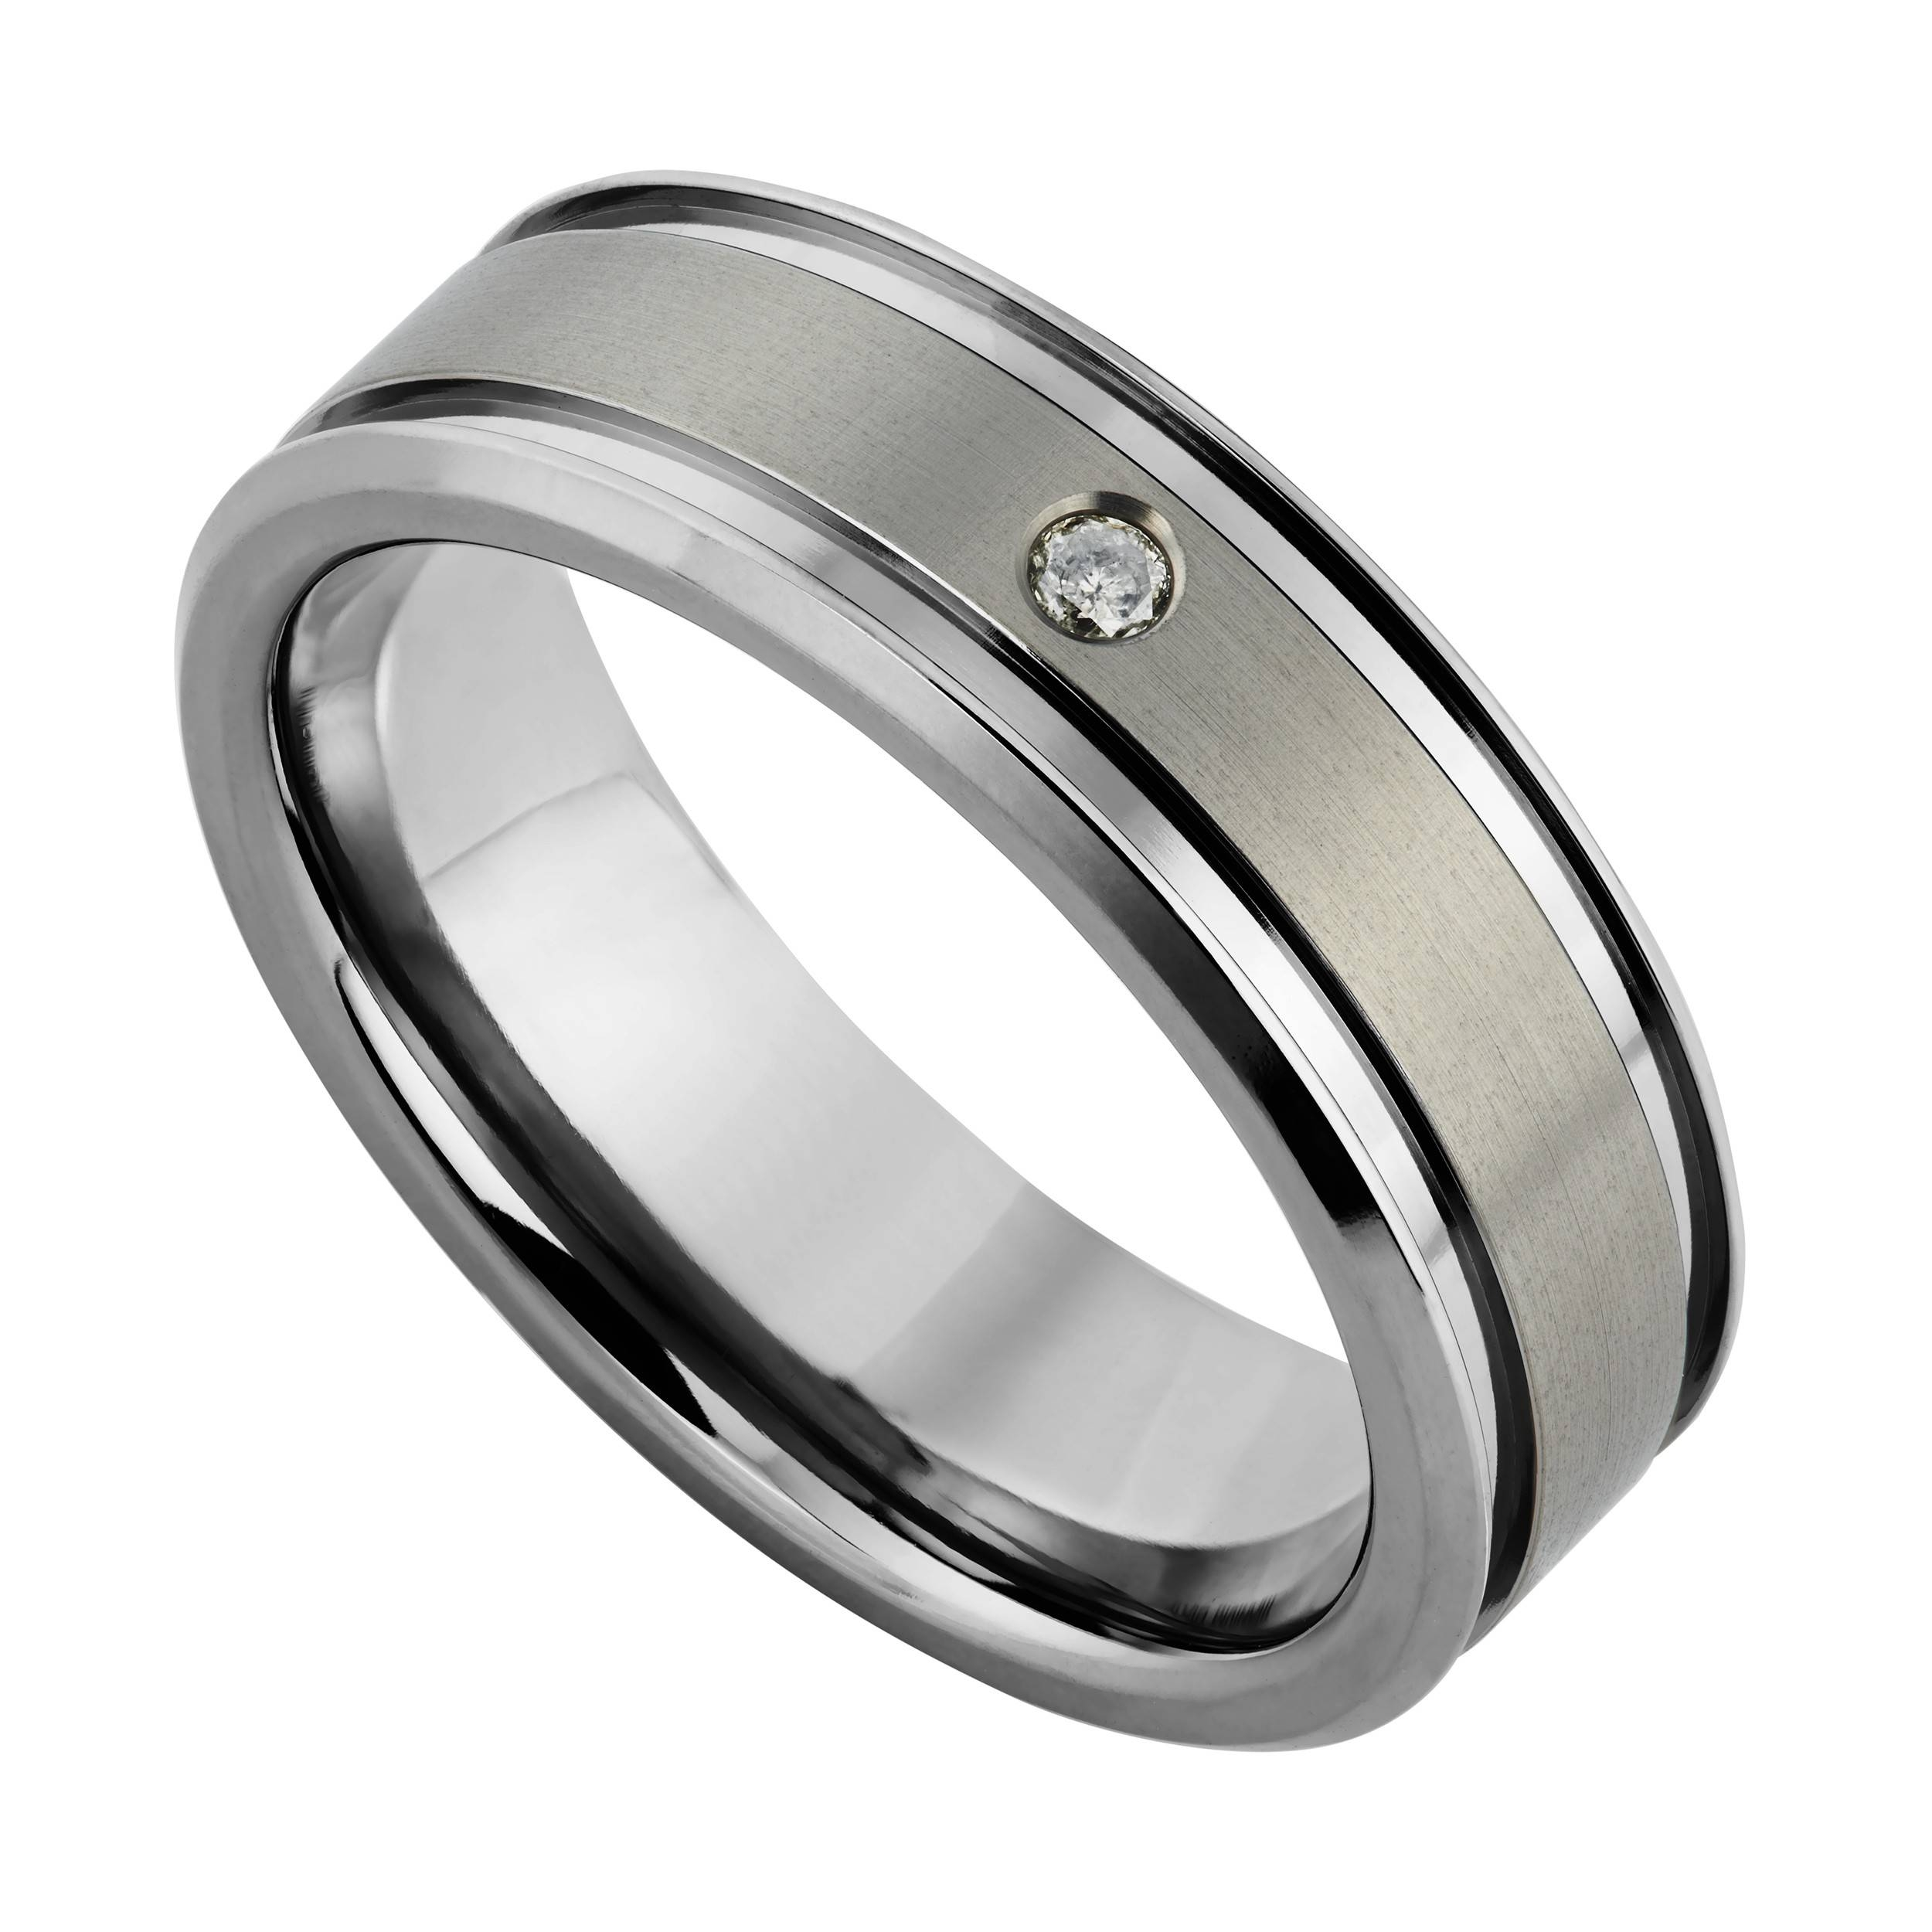 Men's Titanium 7mm Diamond Set Ring Intended For Black Titanium Wedding Bands For Men (View 12 of 15)